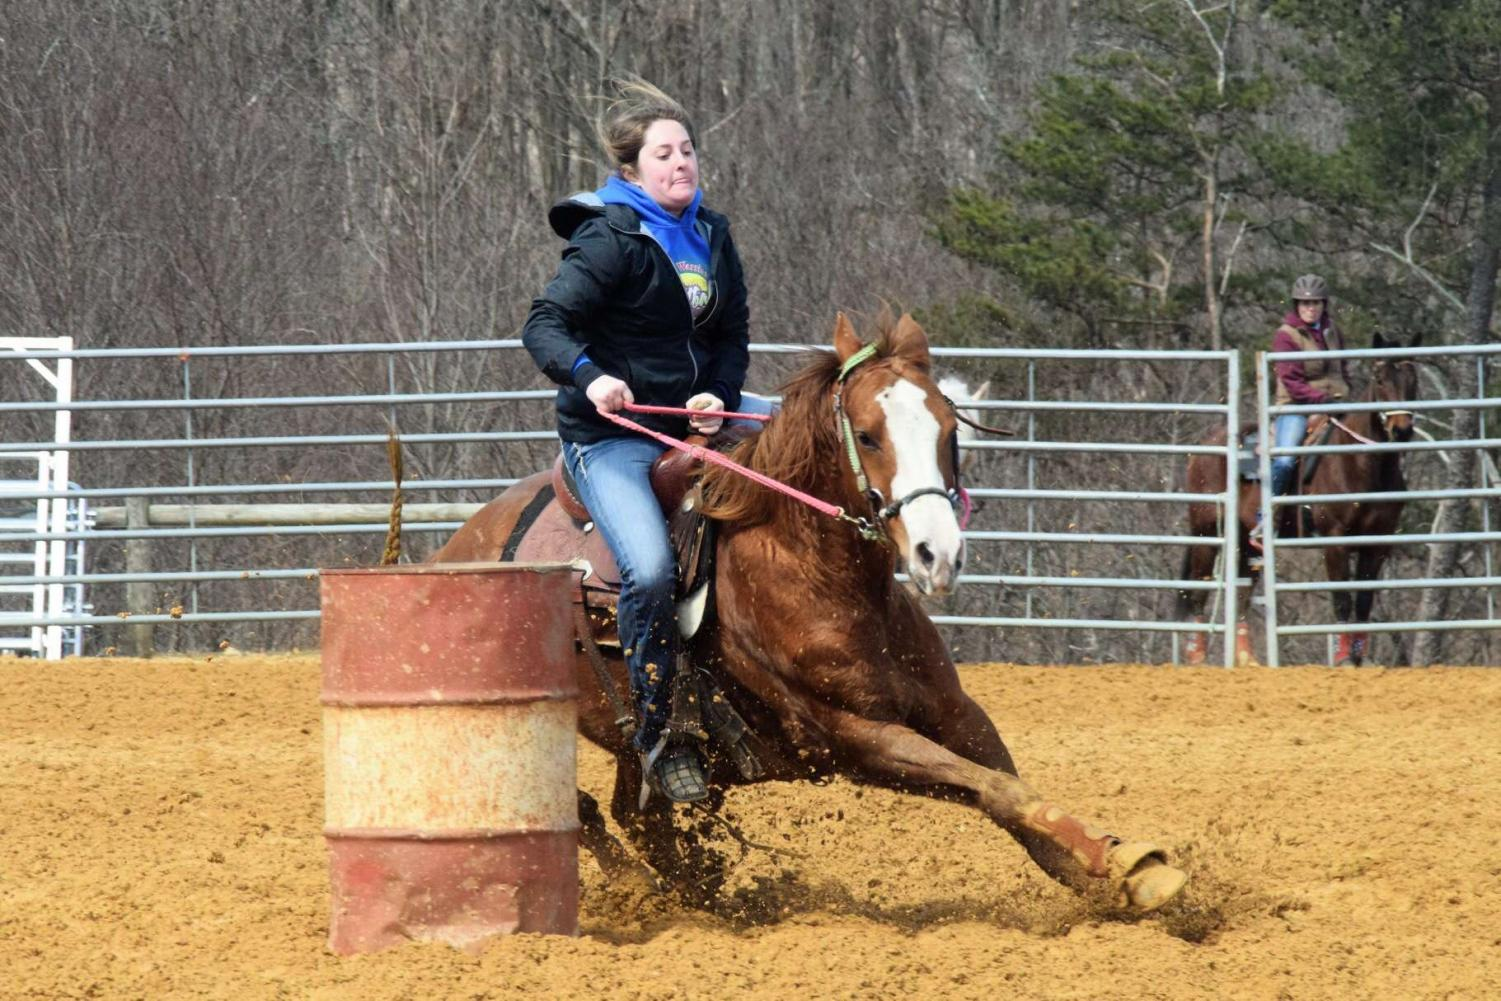 Sydney and her horse Duke round a barrel in a race. Dunlap won the barrel competition.